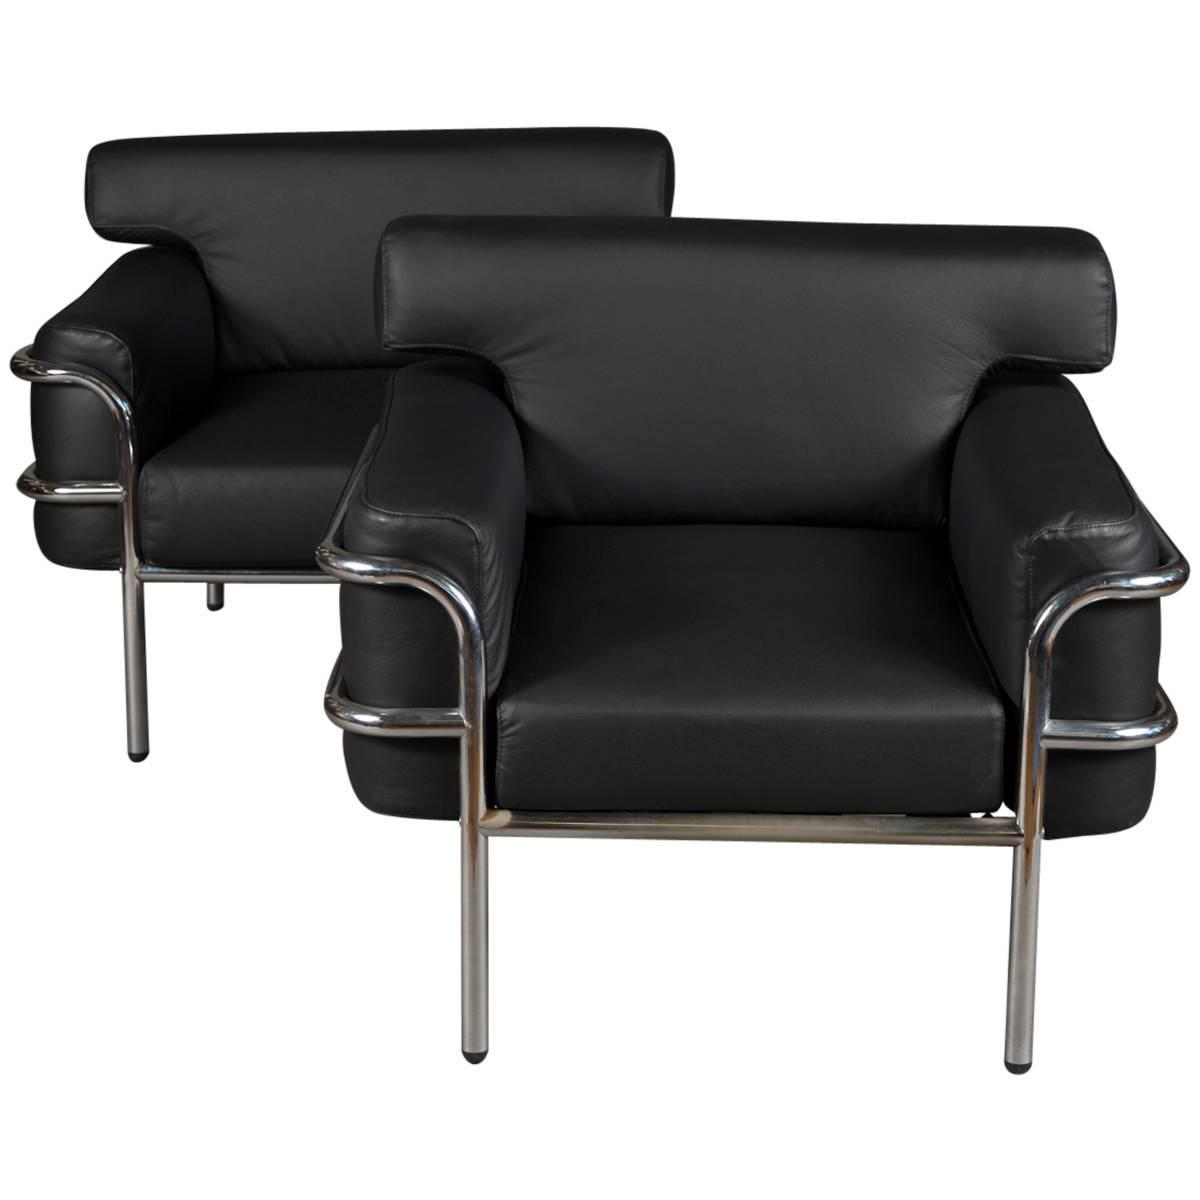 Pair Of Iconic Vintage Le Corbusier Style Black Leather